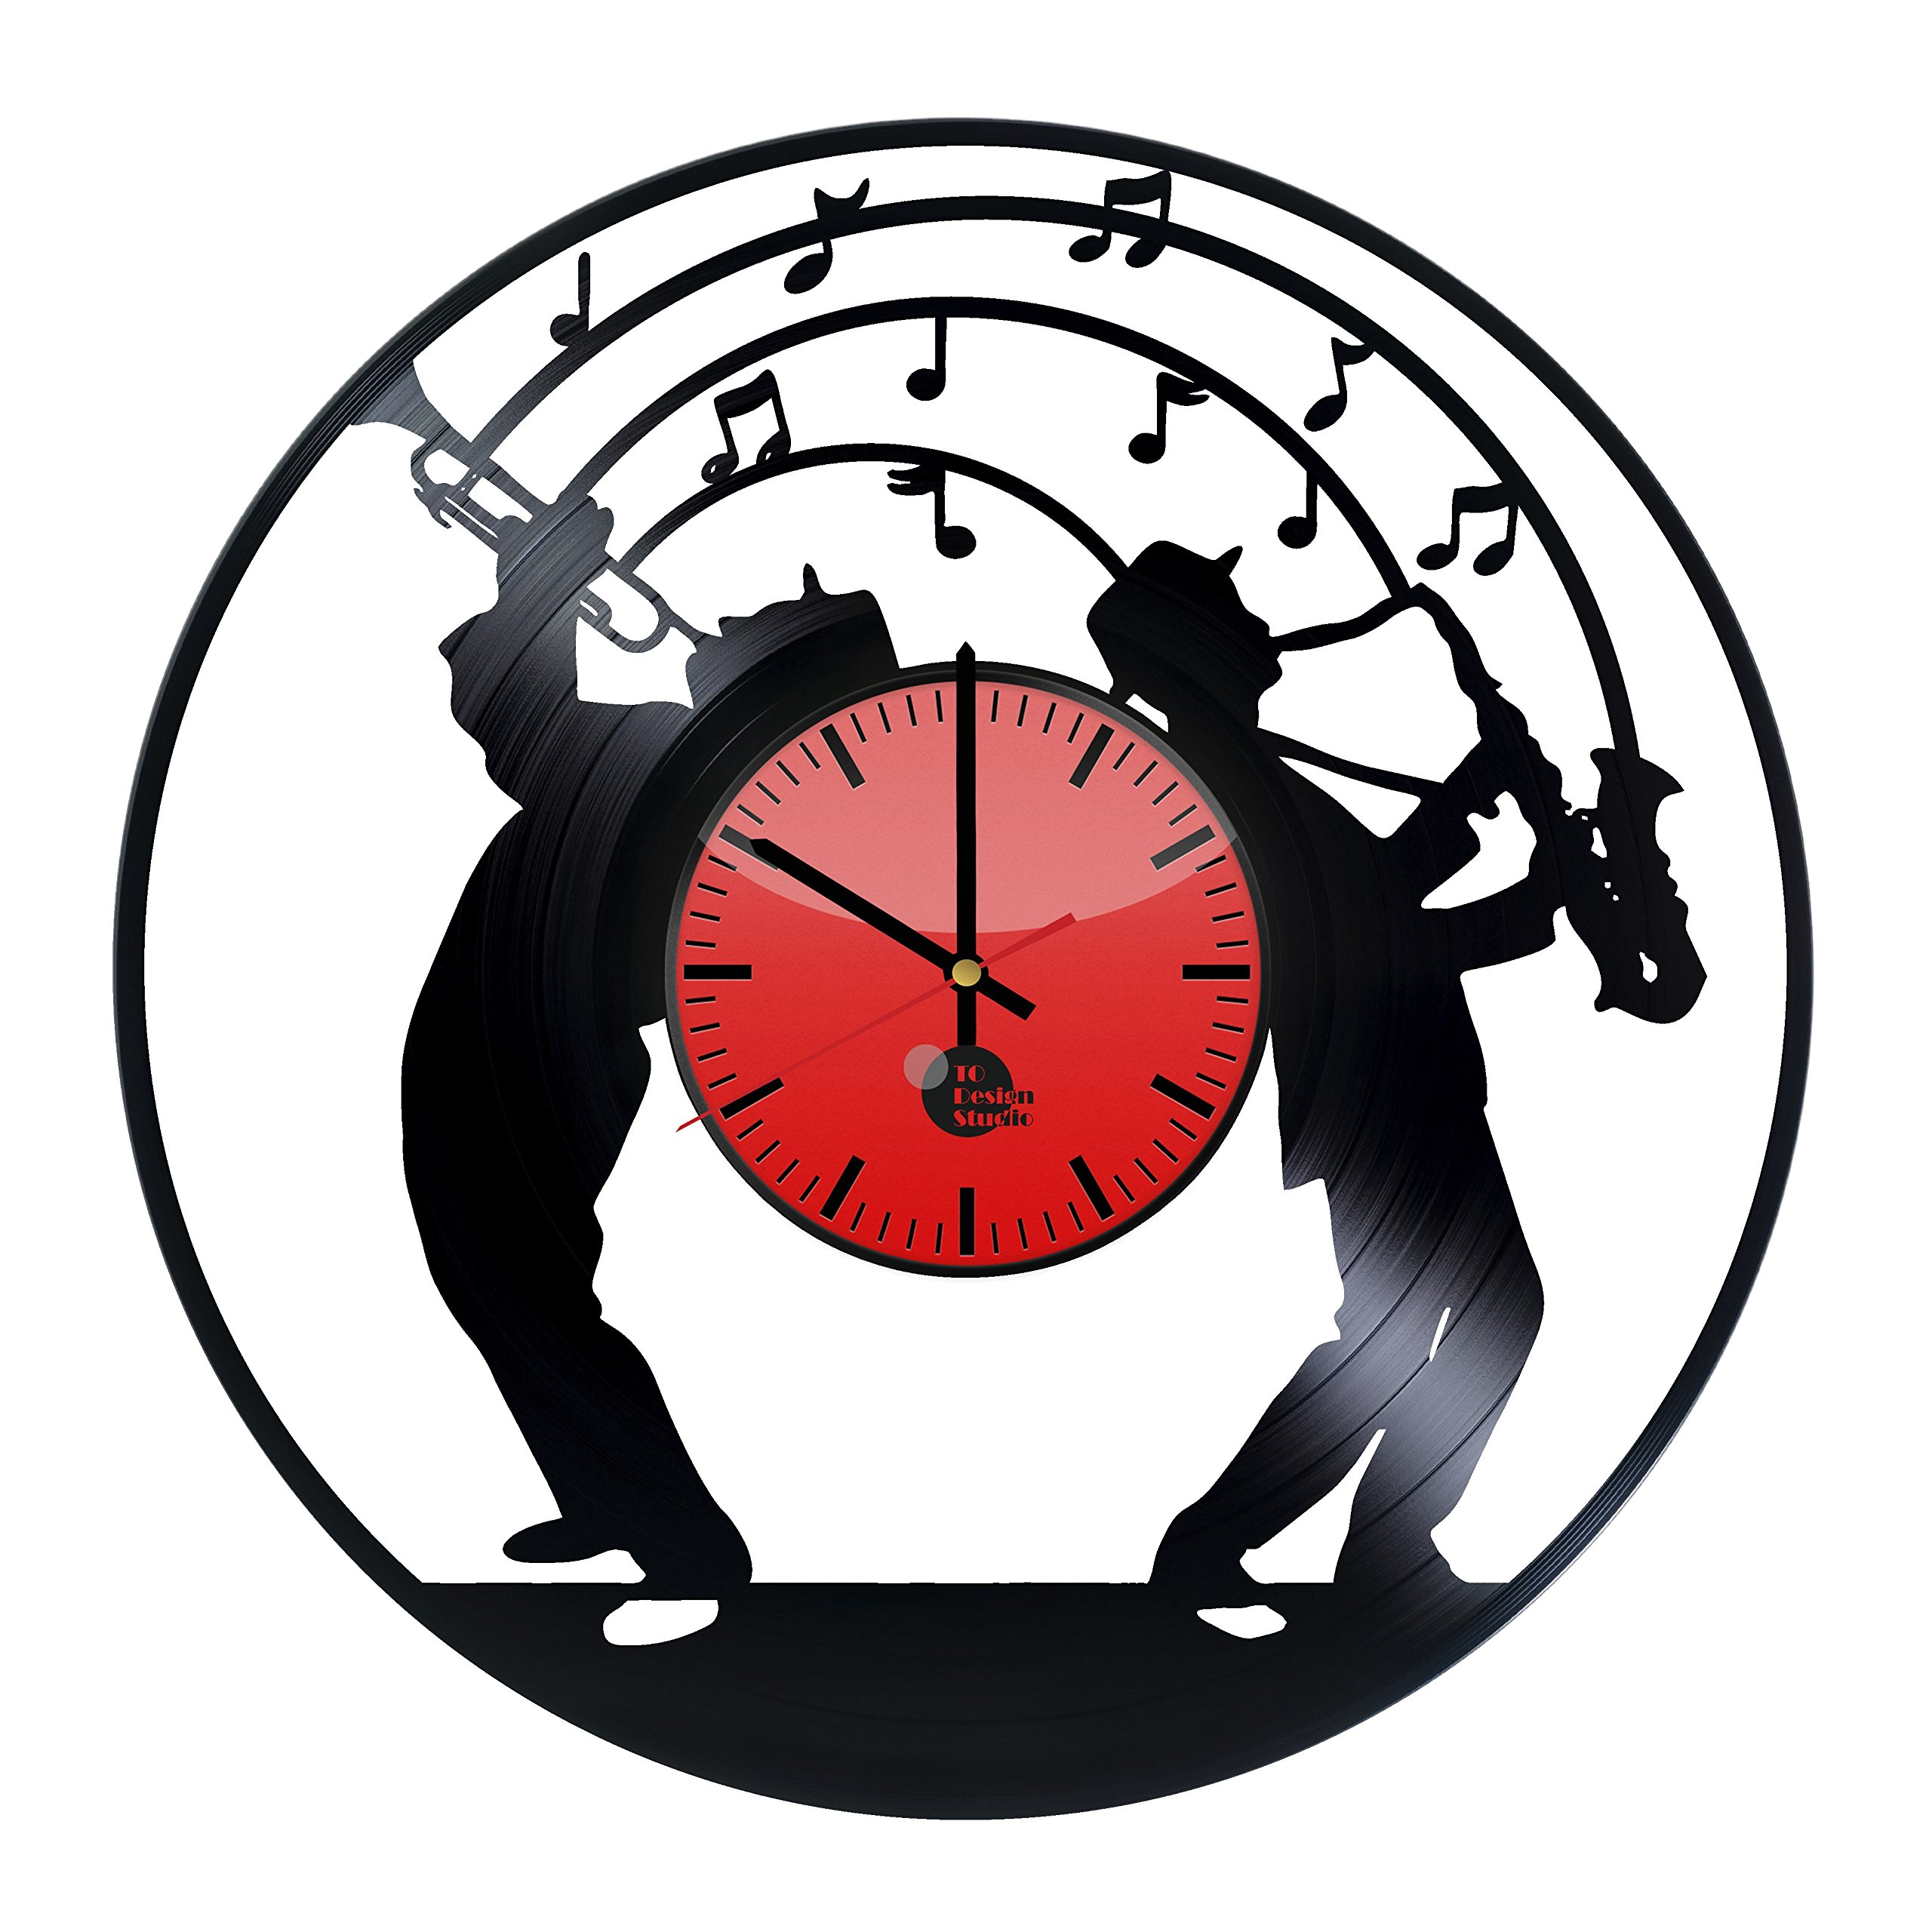 Jazz Vinyl Record Wall Clock - Get unique living room wall decor - Gift ideas for men,women and siblings – Music Unique Art Design - Leave us a feedback and win your custom clock